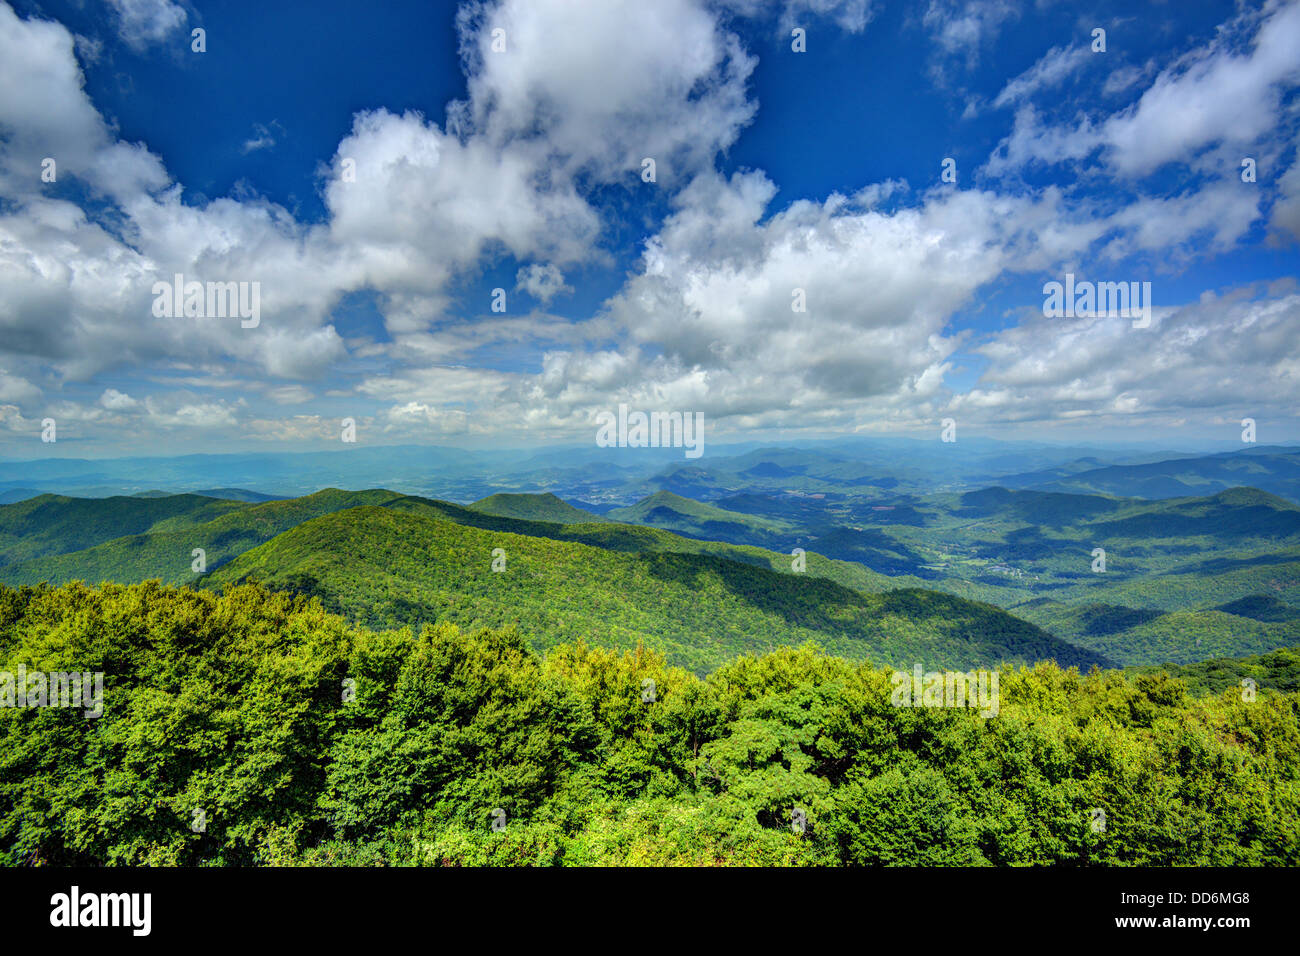 View of Appalachian mountains in north Georgia, USA. Stock Photo